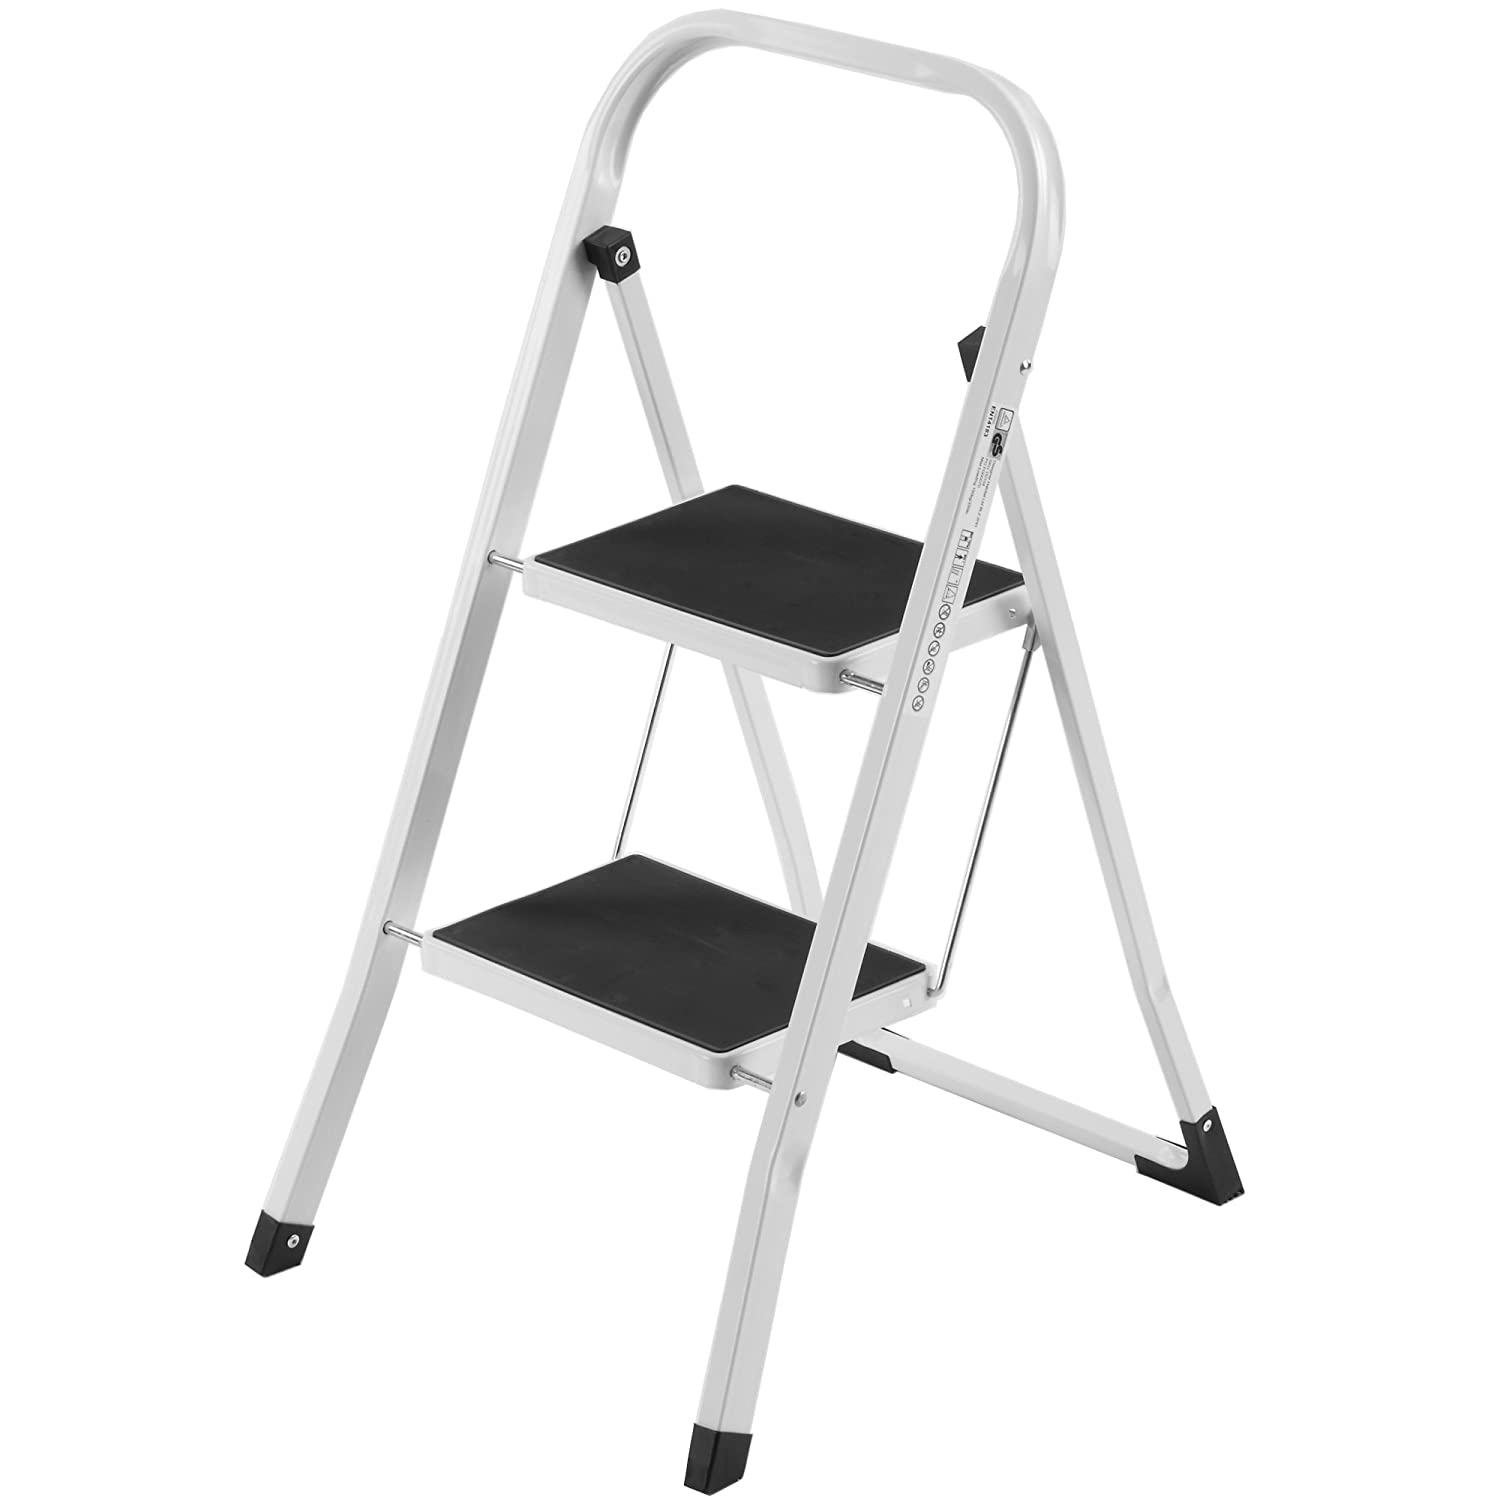 Amazon.com VonHaus Steel Folding Compact Portable 2 Step Ladder with 330lbs Capacity Home Improvement  sc 1 st  Amazon.com & Amazon.com: VonHaus Steel Folding Compact Portable 2 Step Ladder ... islam-shia.org